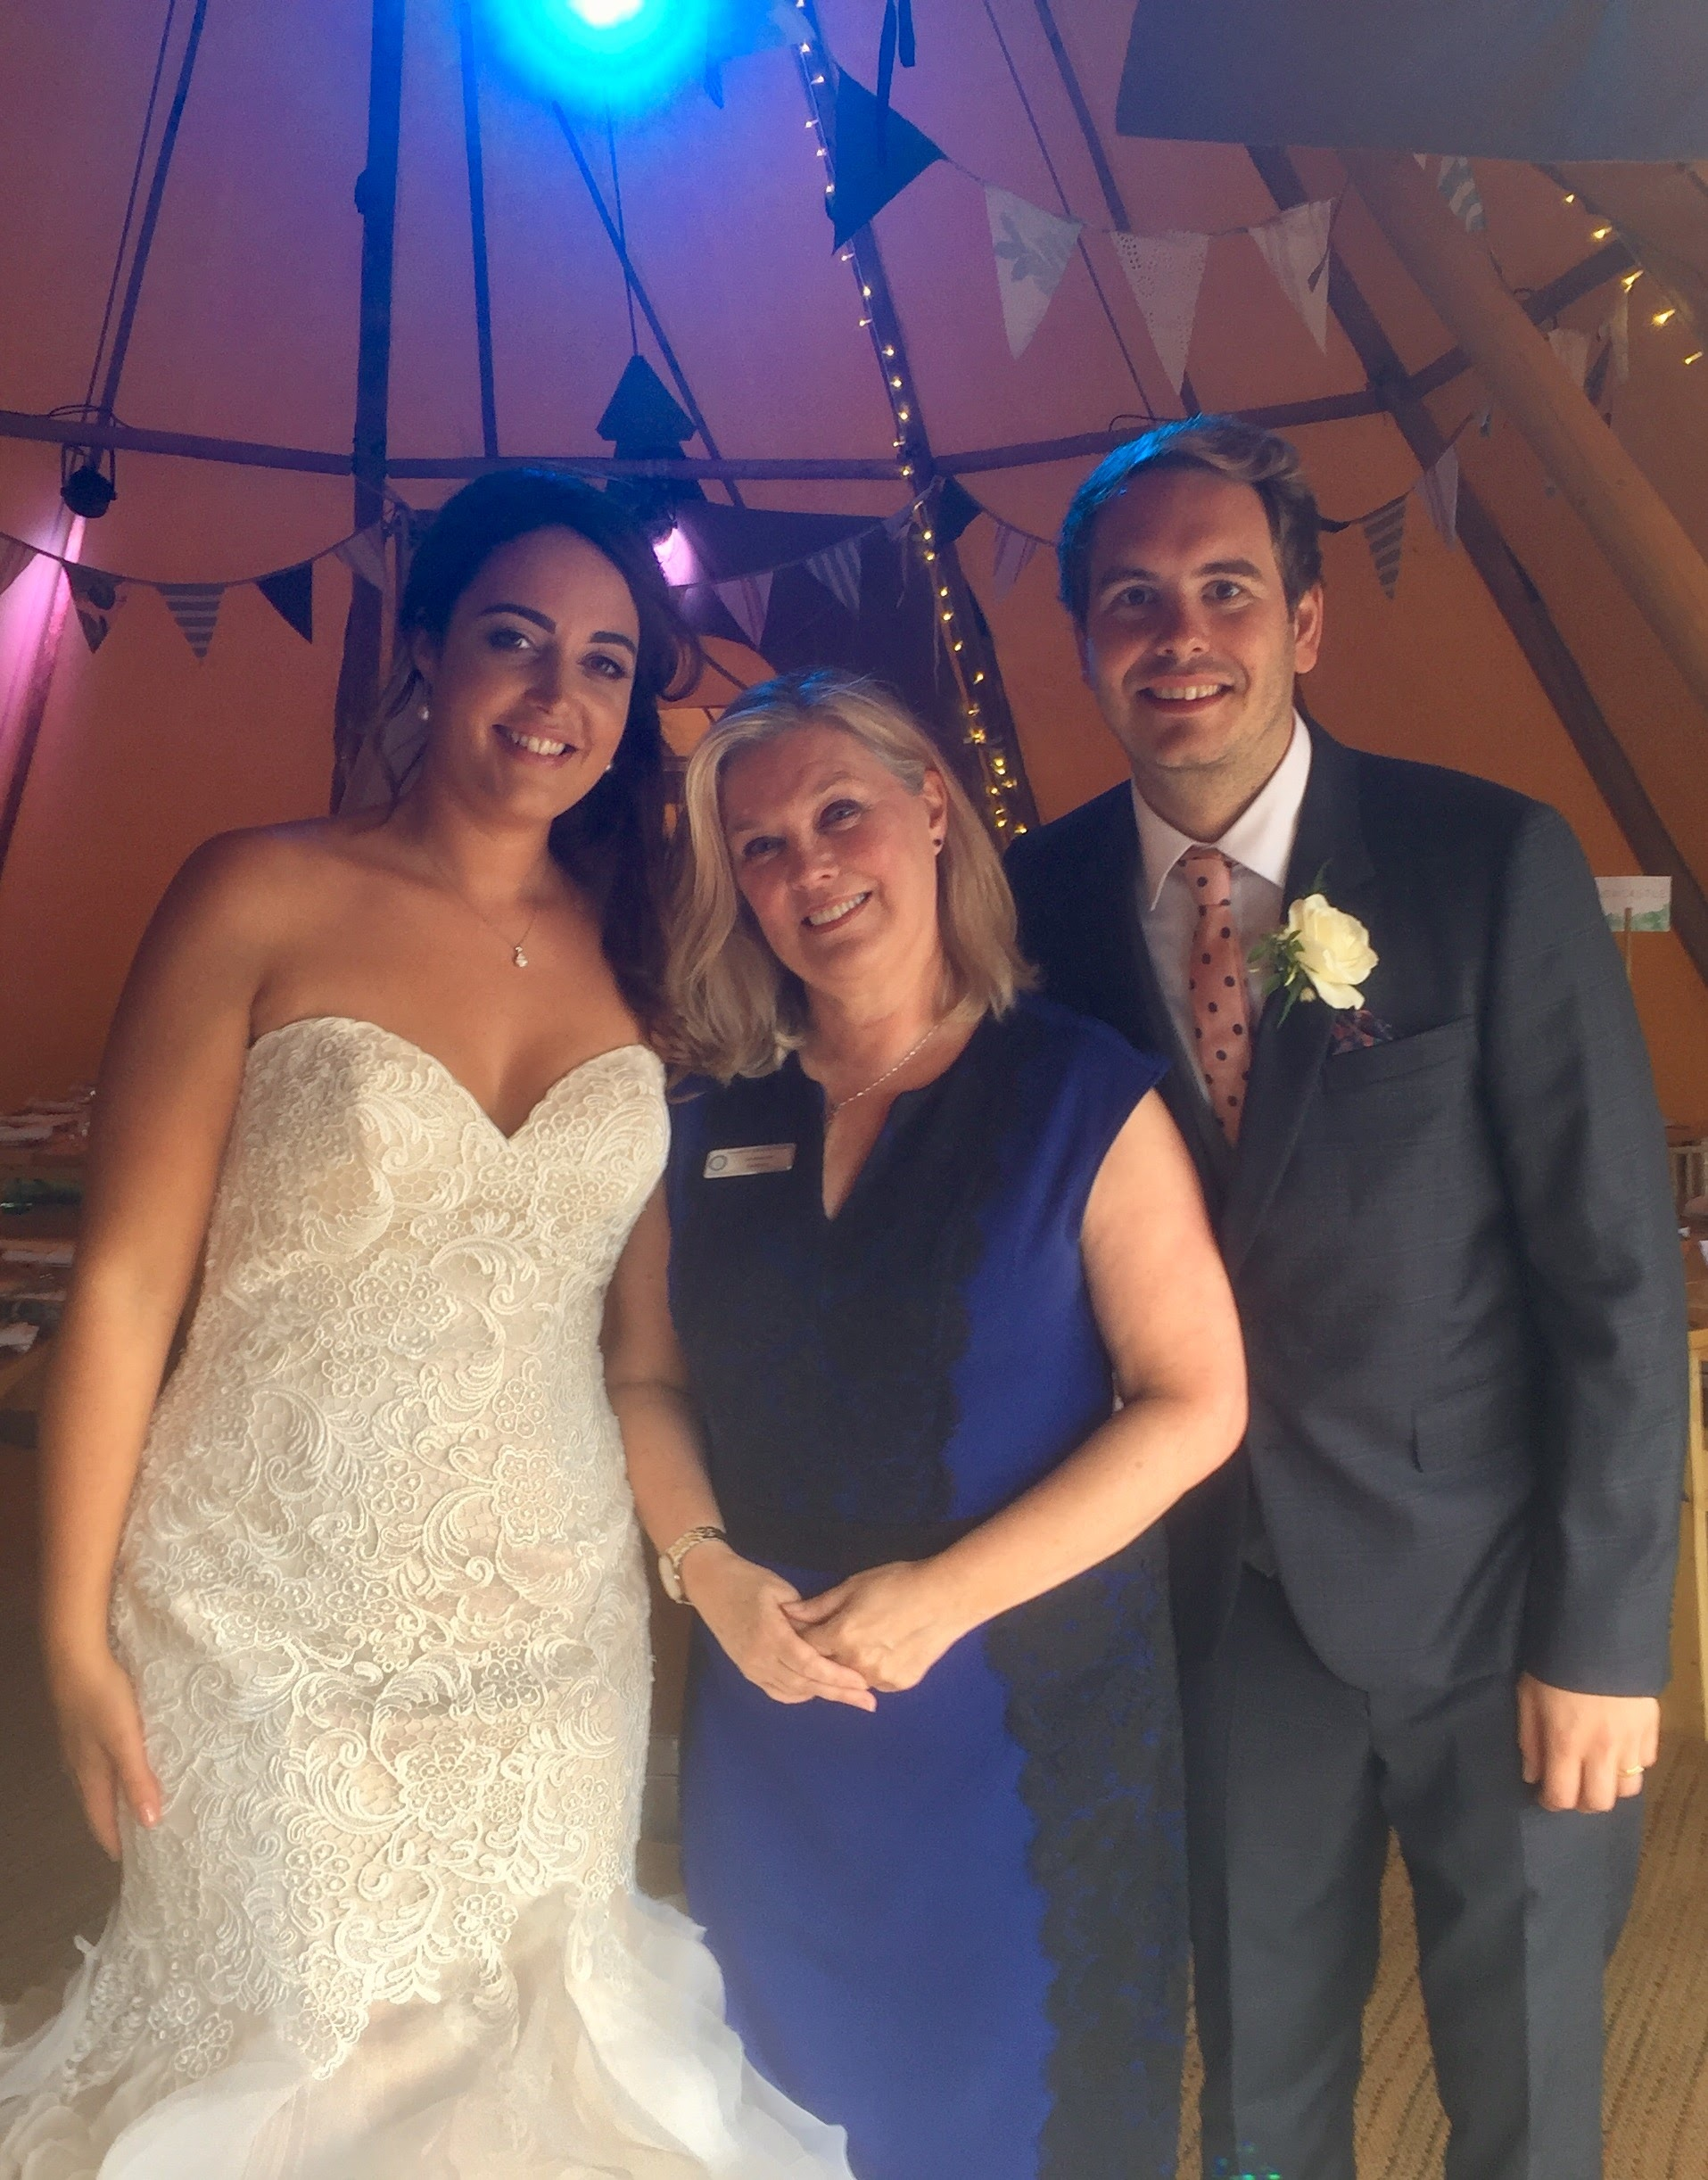 Wirral Farm Wedding Celebrant, Lorraine Hull